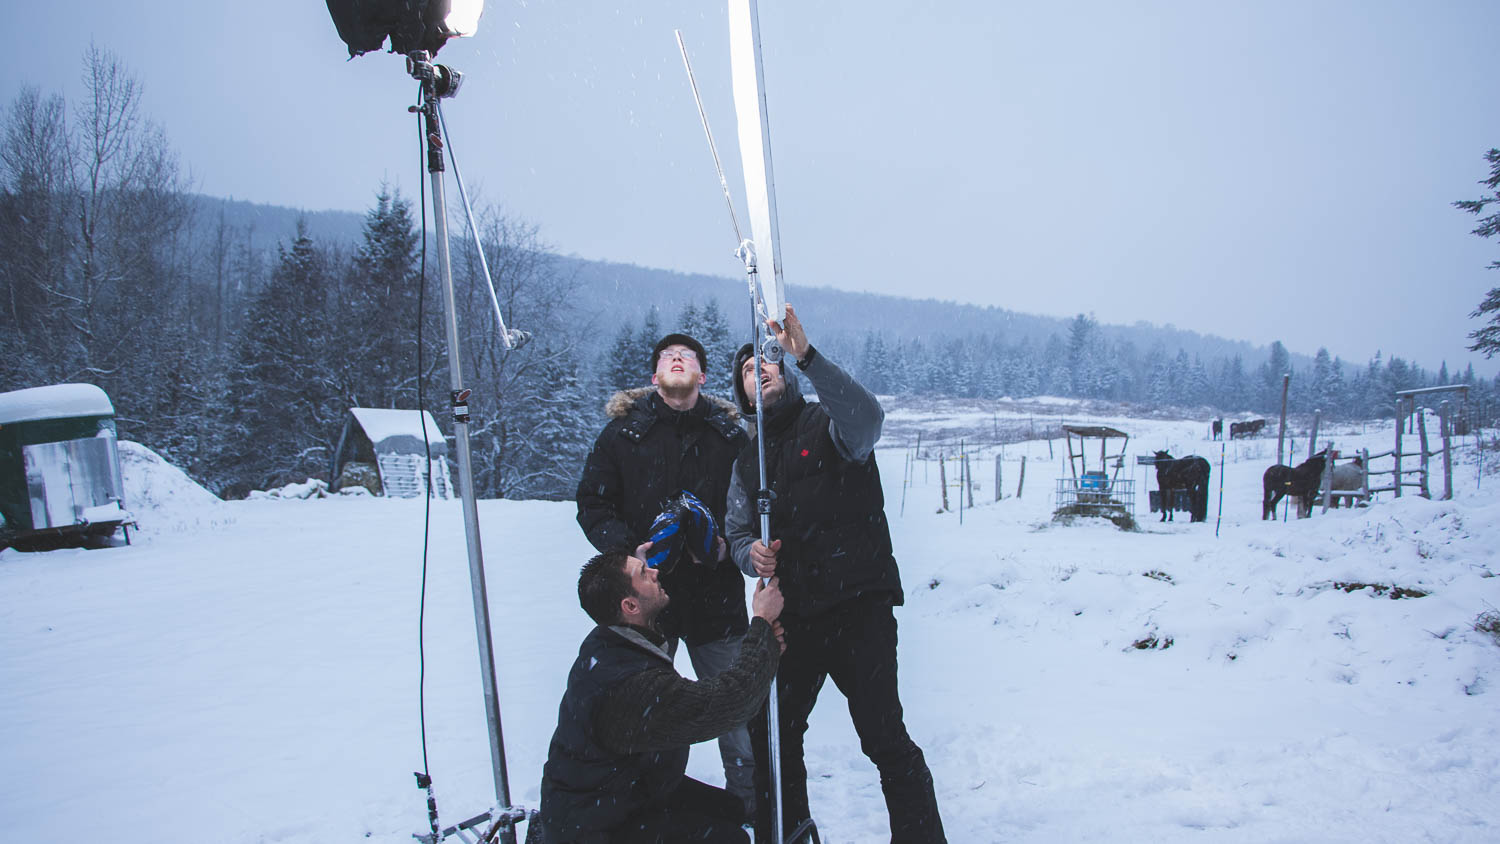 Final setup with the lighting equipment during the shooting of the short-film Valery's suitcase from the director Arshad Khan. the last scene was in a farm with horse, near the town of Rawdon, Quebec, Canada